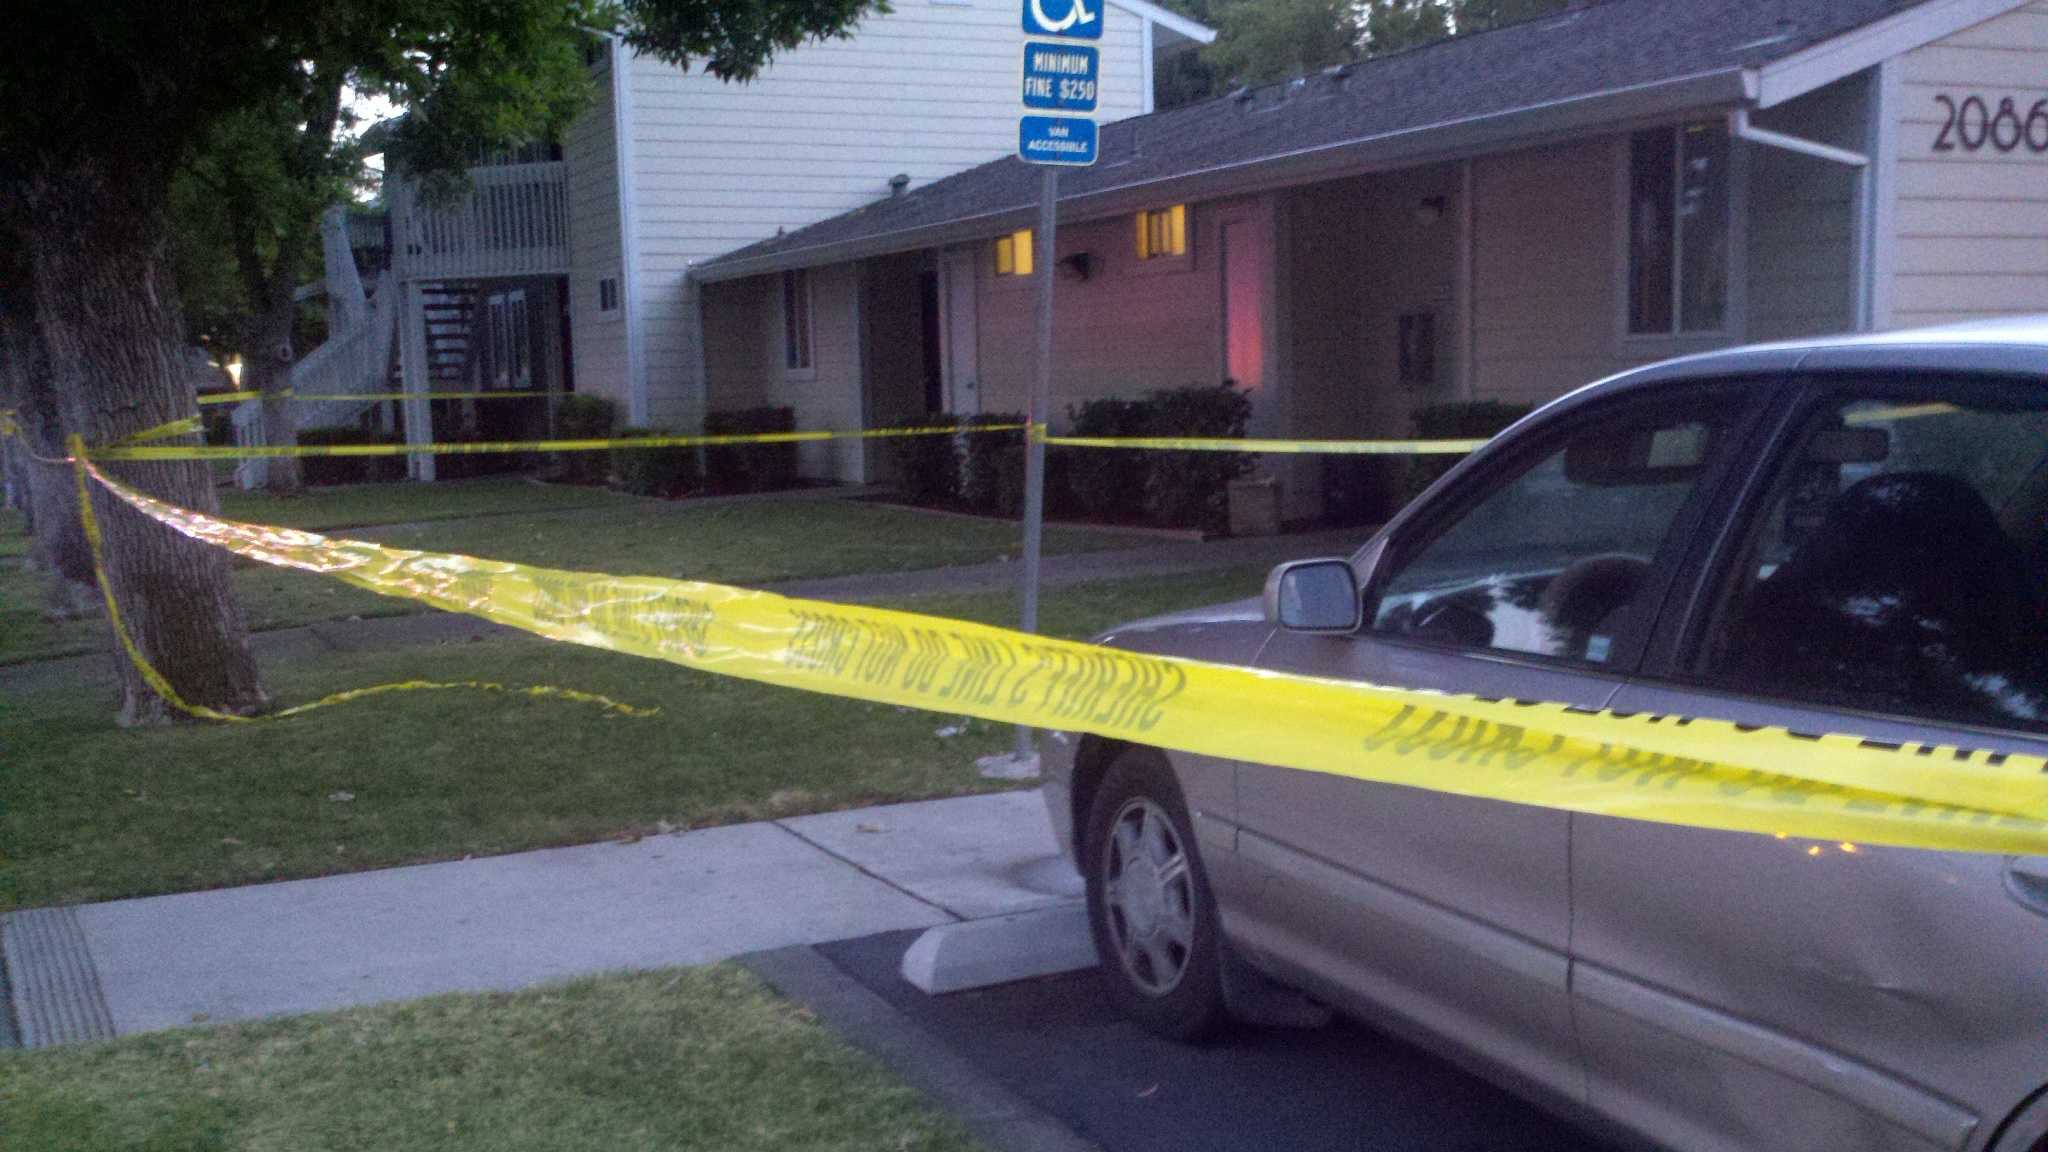 Sacramento County sheriff's deputies were interviewing an 11-year-old girl who may the only witness to a double homicide that happened Tuesday evening in Rancho Cordova.